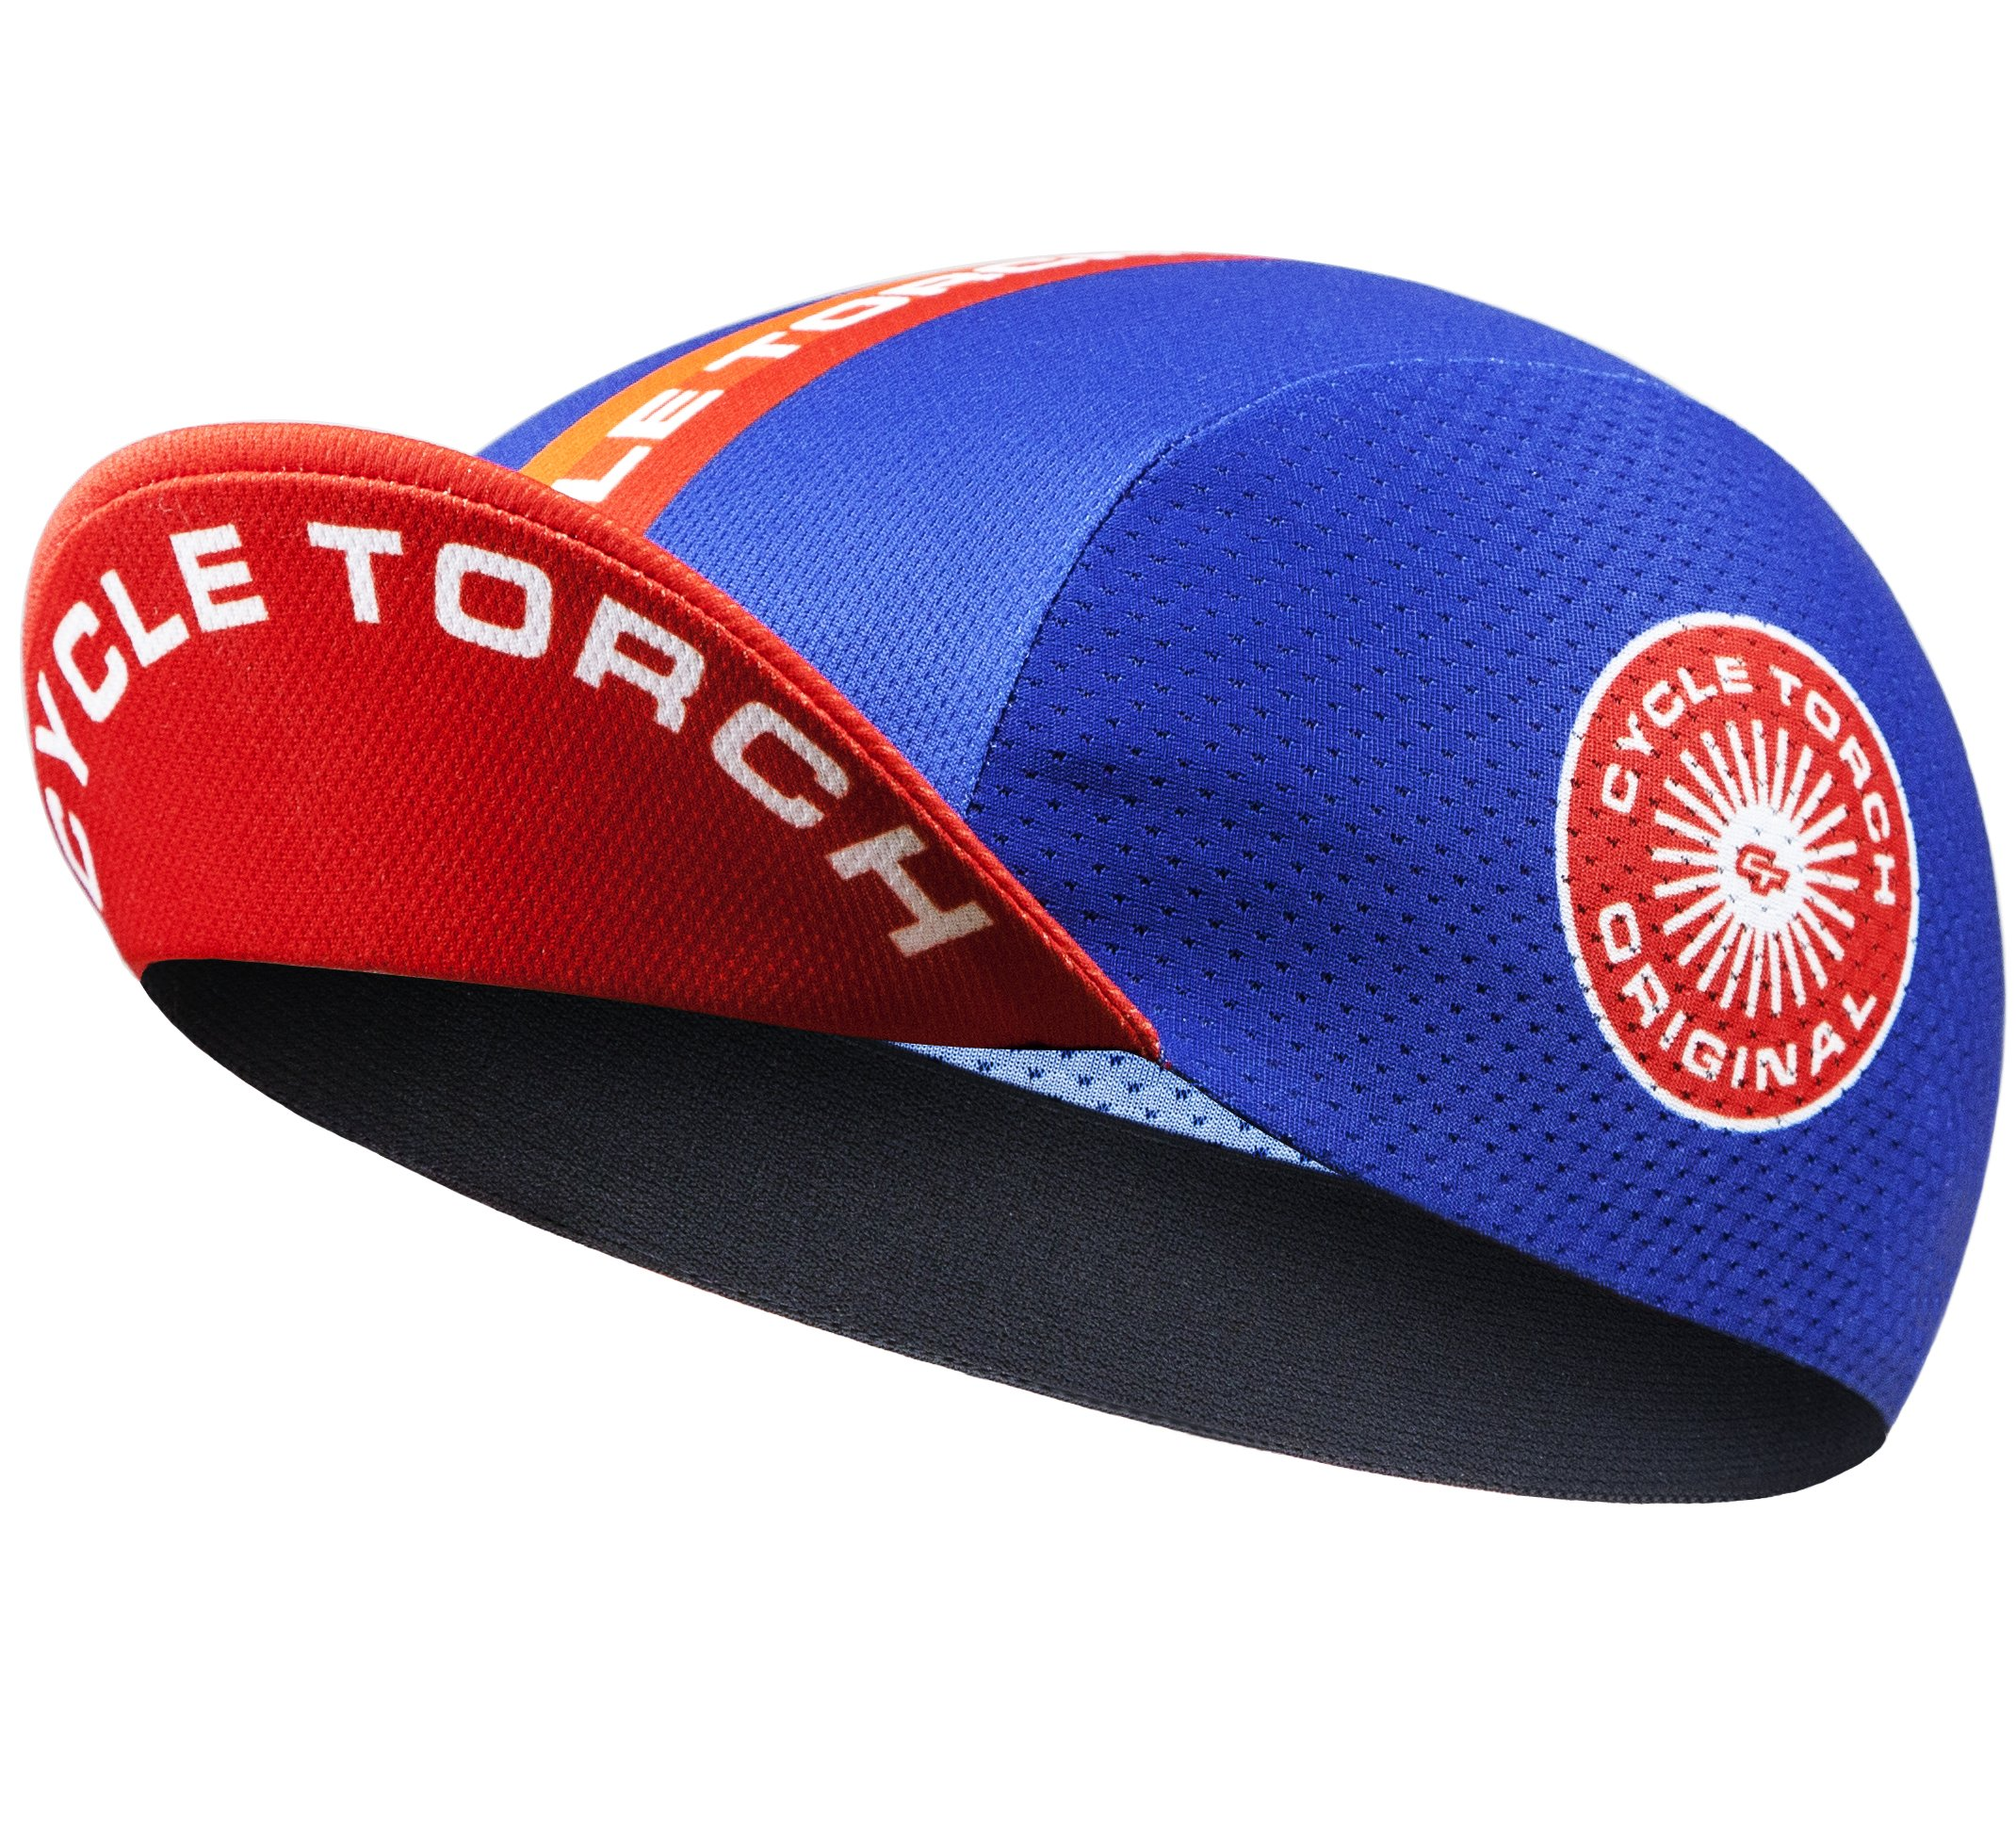 Cycle Torch Men's Cycling Cap, Polyester Breathable Helmet Liner Hat